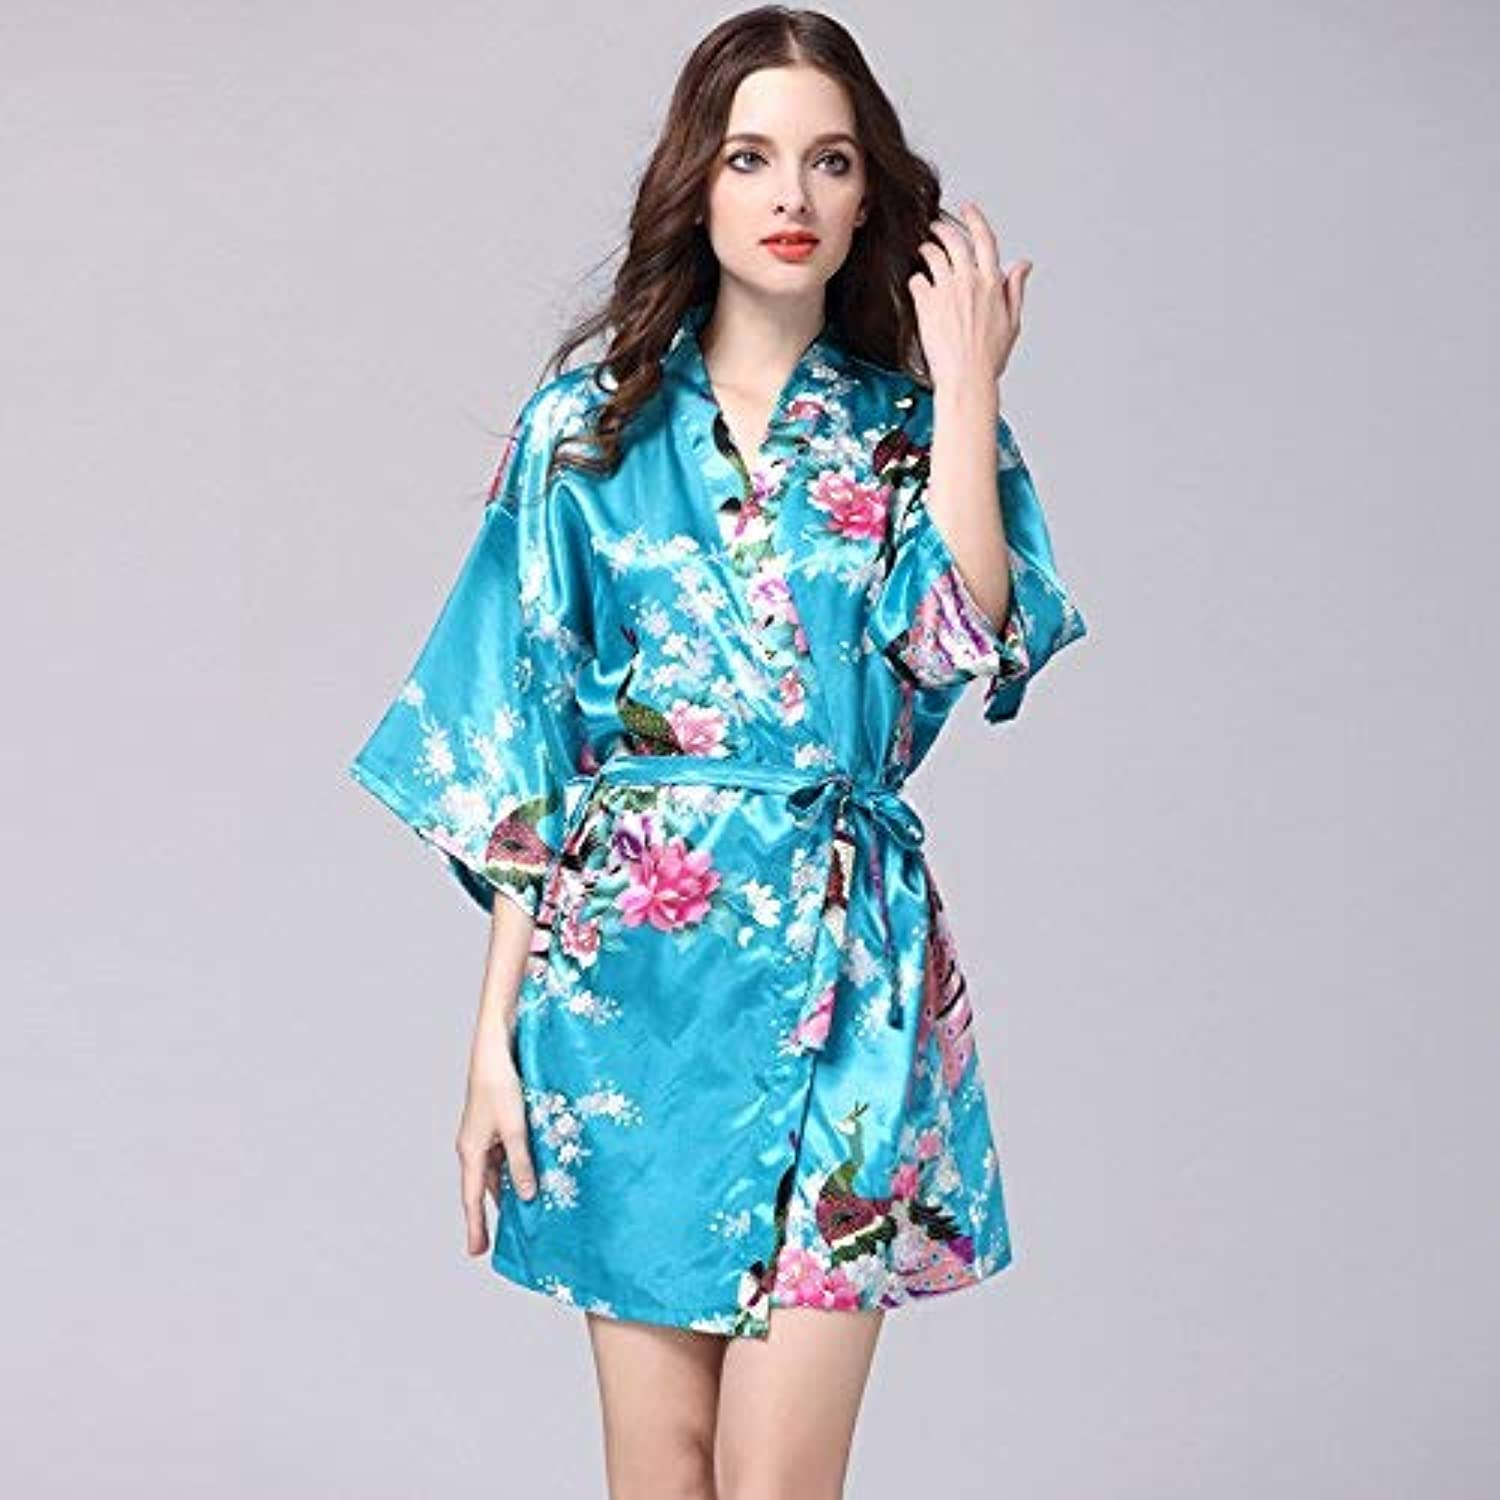 Nightshirt, Simulation Silk Nightgown Ladies Summer Sleeve Peacock Pajamas Bathrobe Large Size Home Service (color   bluee, Size   S) (color   bluee, Size   Medium)